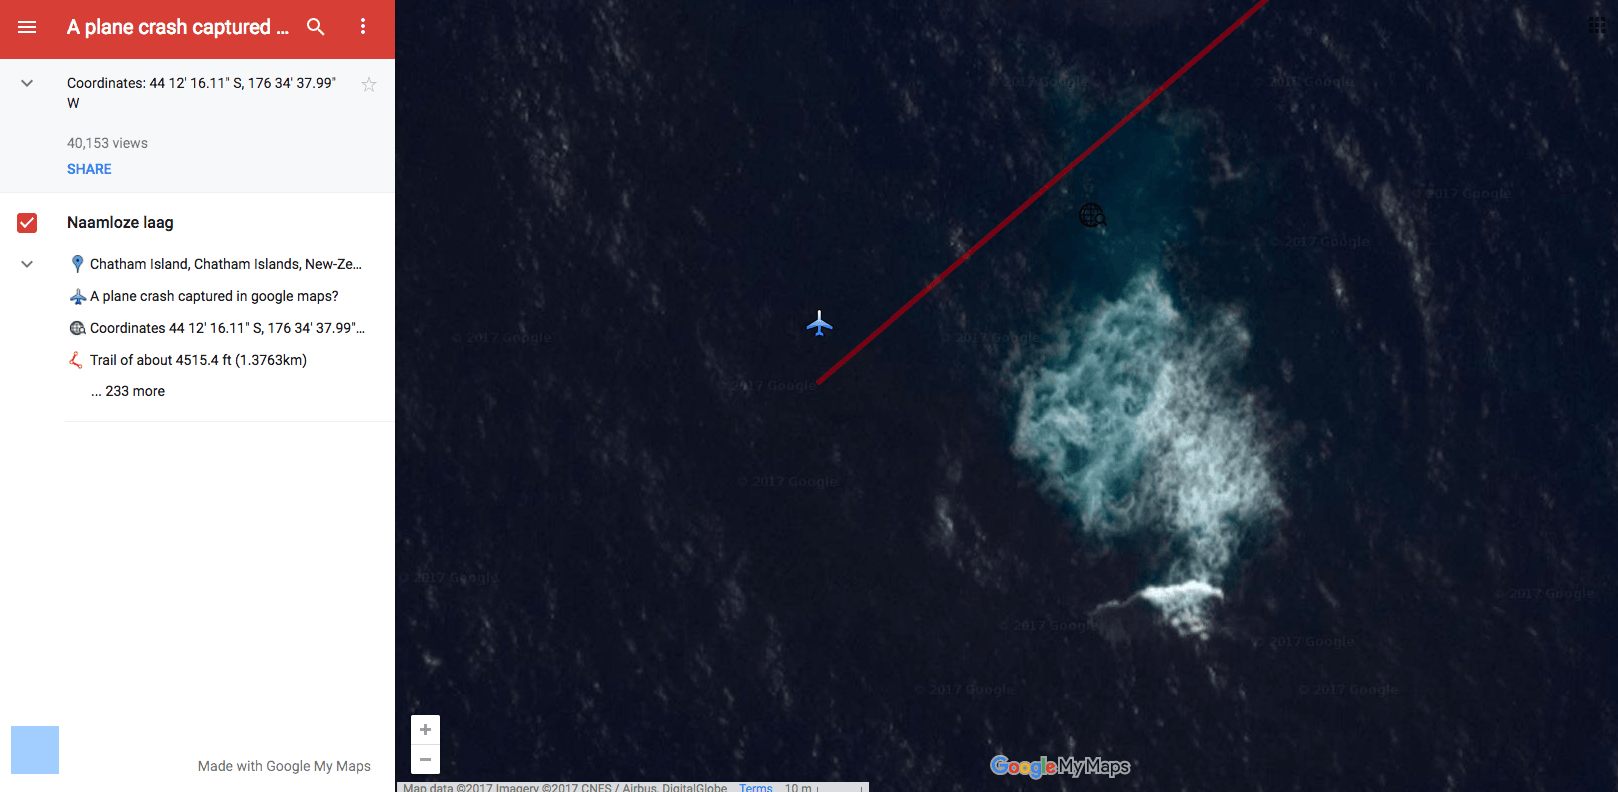 Google Maps accidentally caught a satellite image of an airplane mid